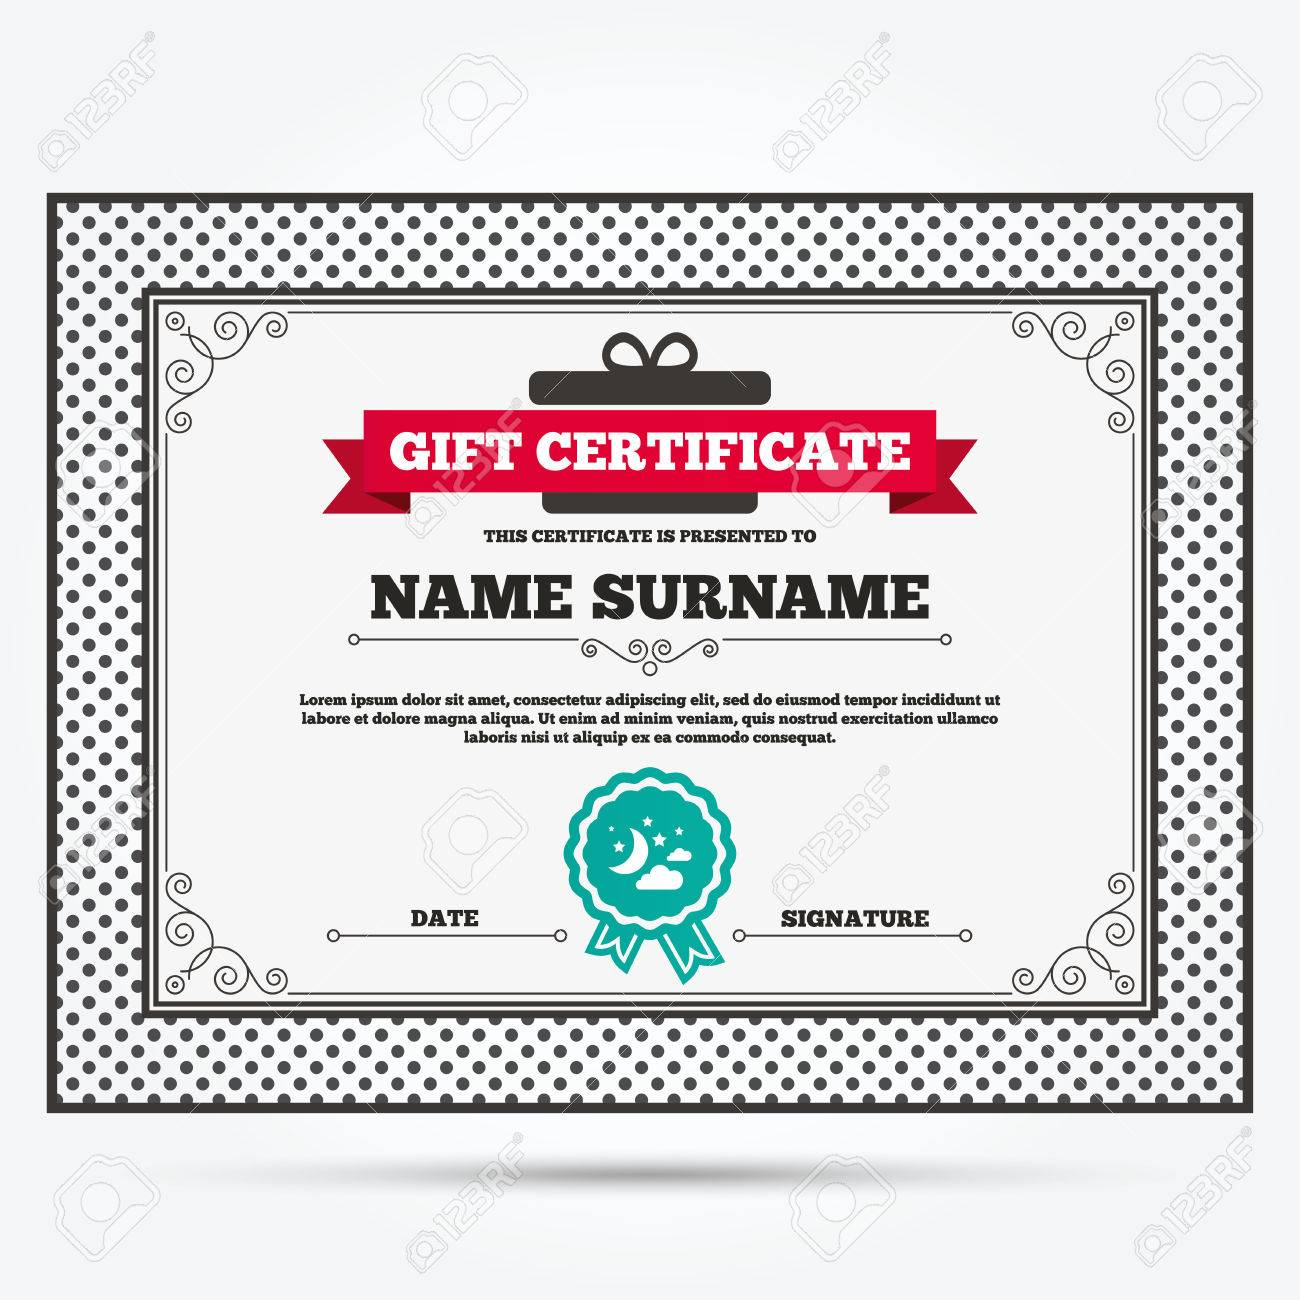 Dundie award certificate template image collections certificate 100 star award certificate template blank and editable star award certificate template gift certificate moon clouds yadclub Choice Image